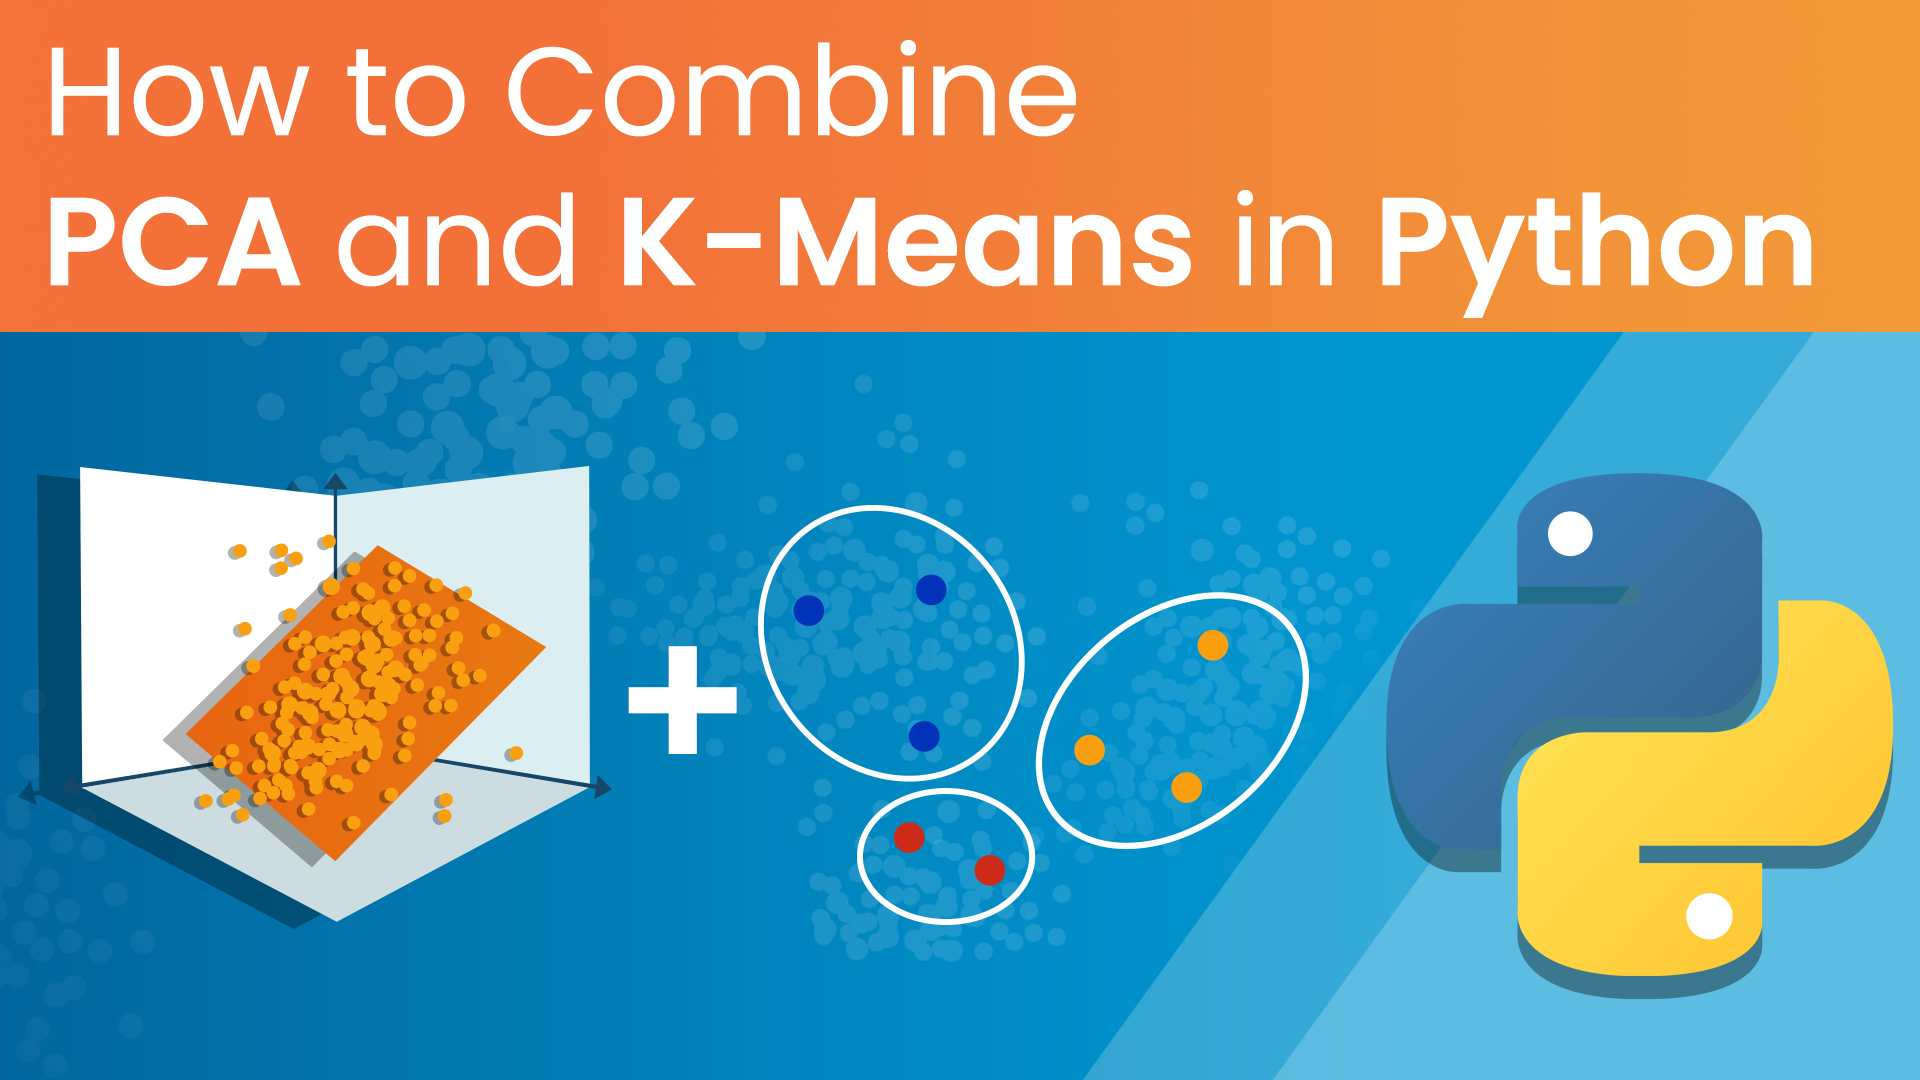 pca and k-means, pca and k-means in python, principal components analysis and k-means